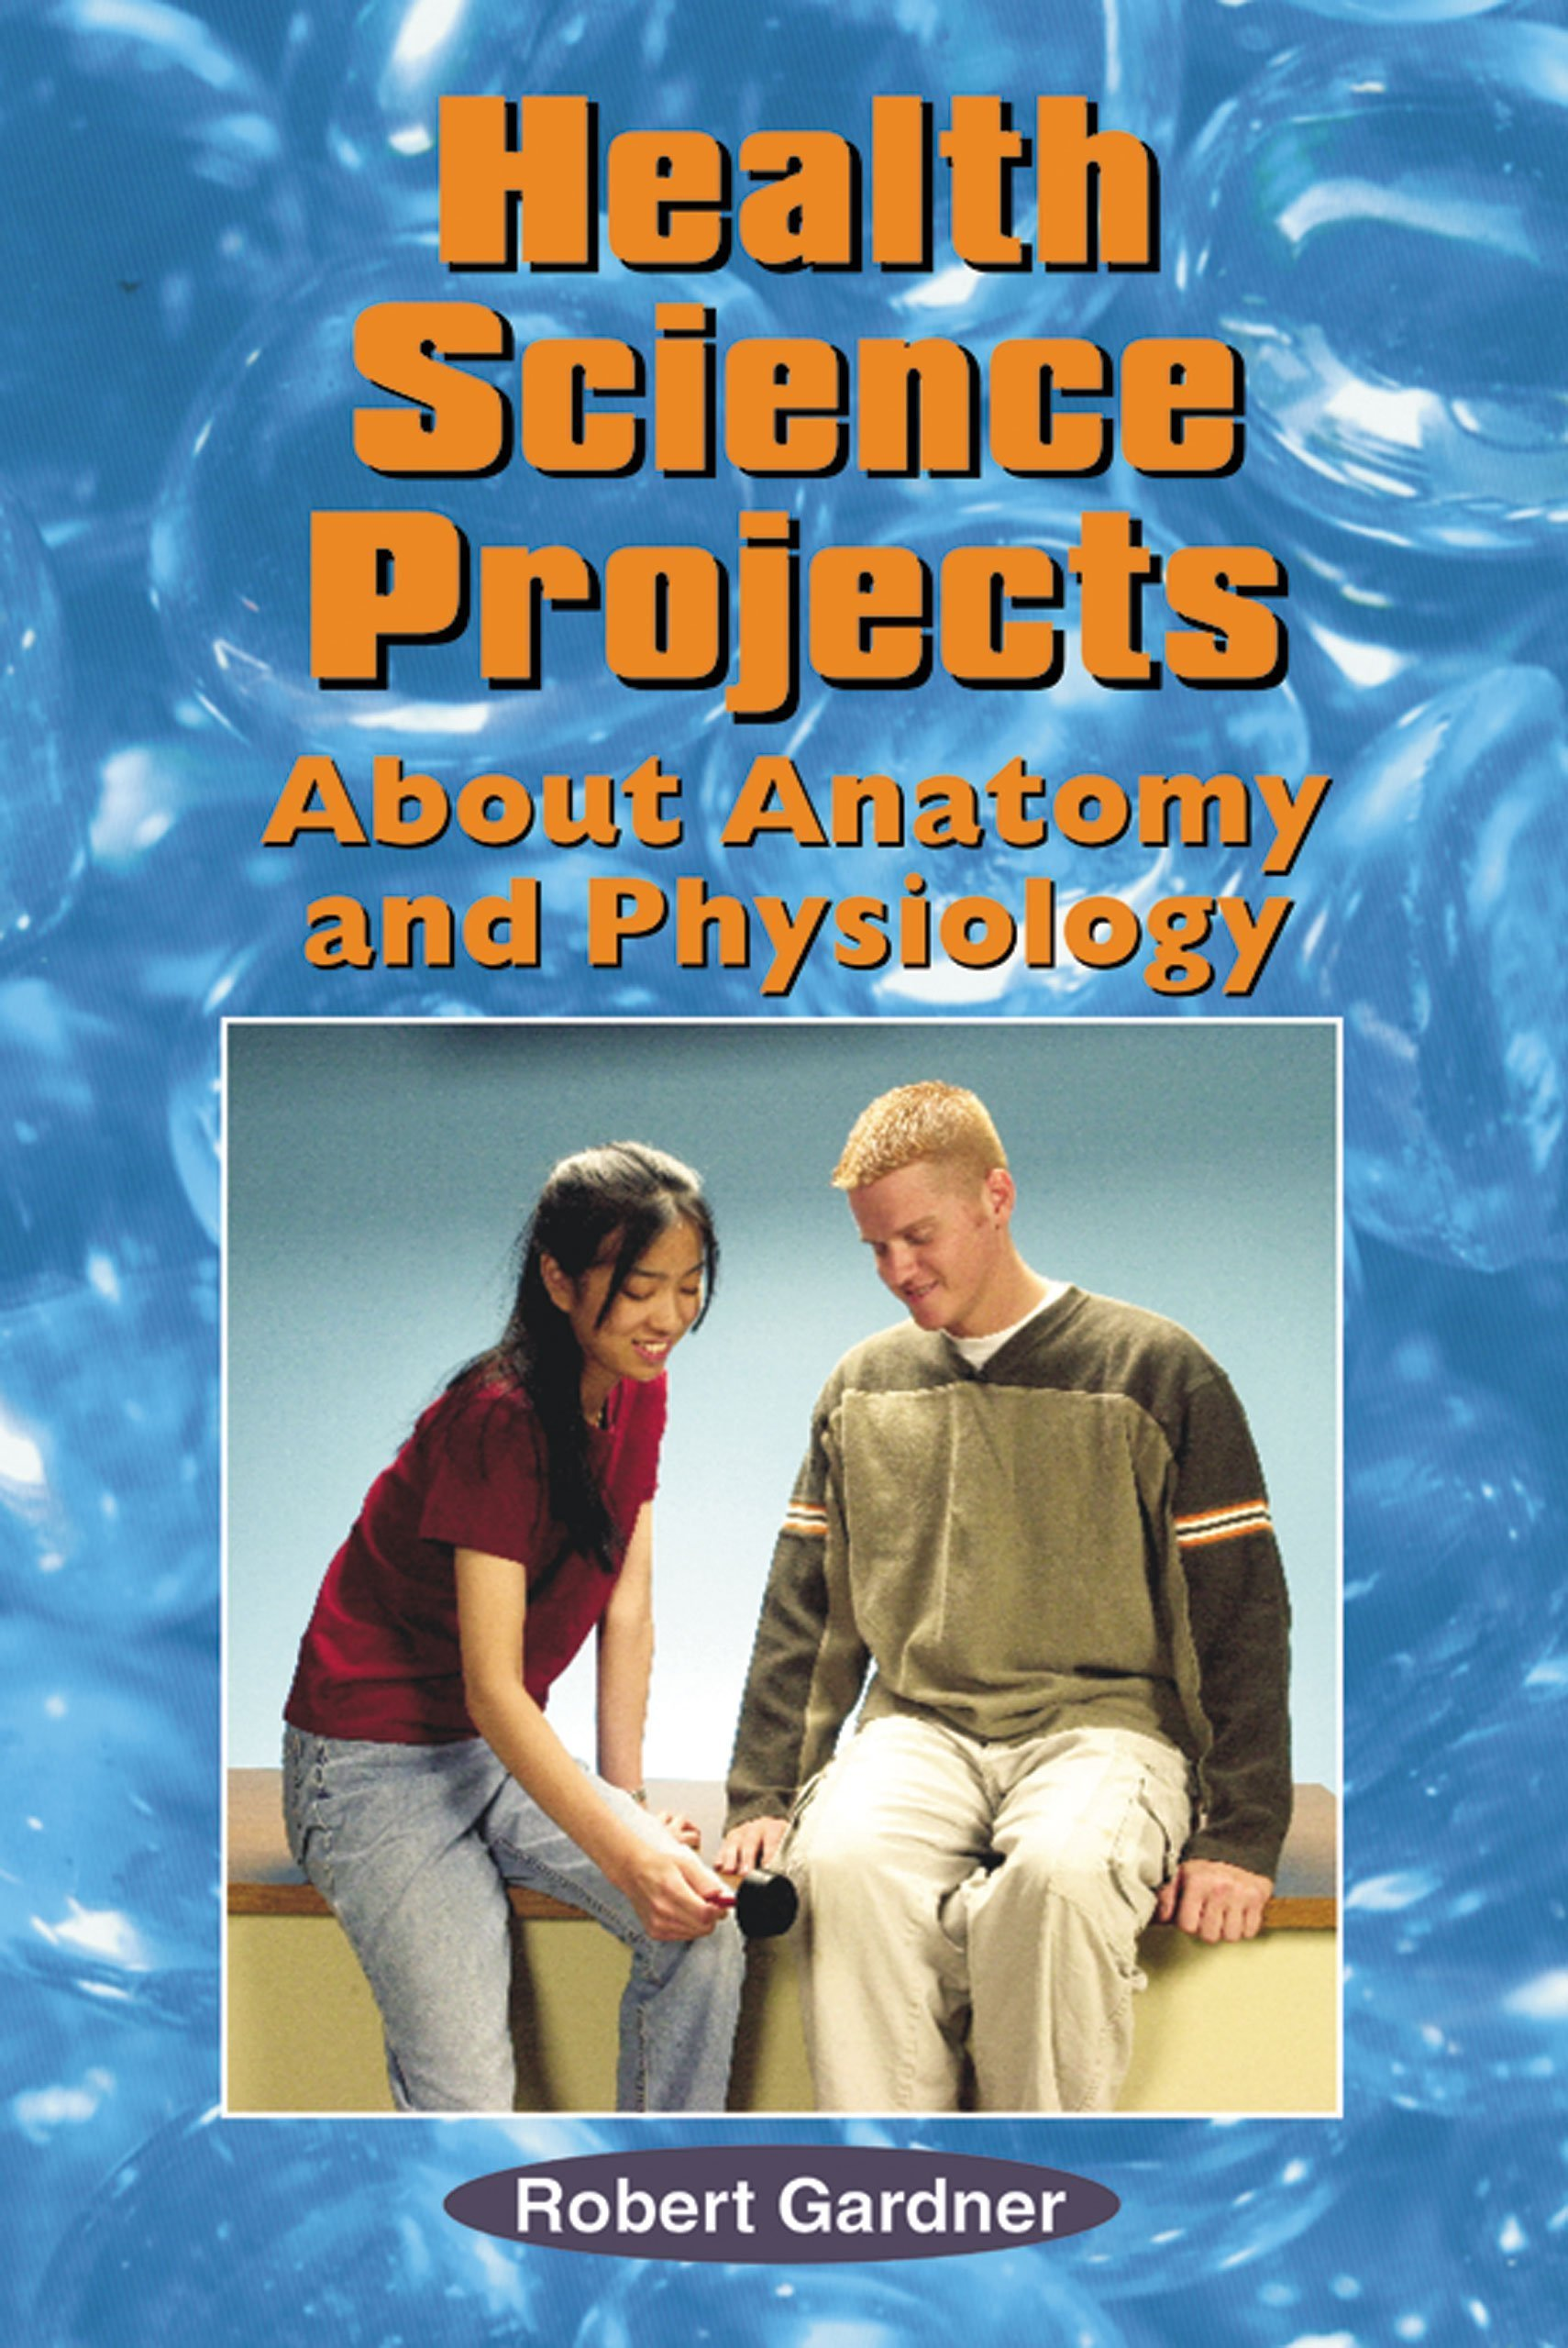 Amazon.com: Health Science Projects about Anatomy and Physiology ...